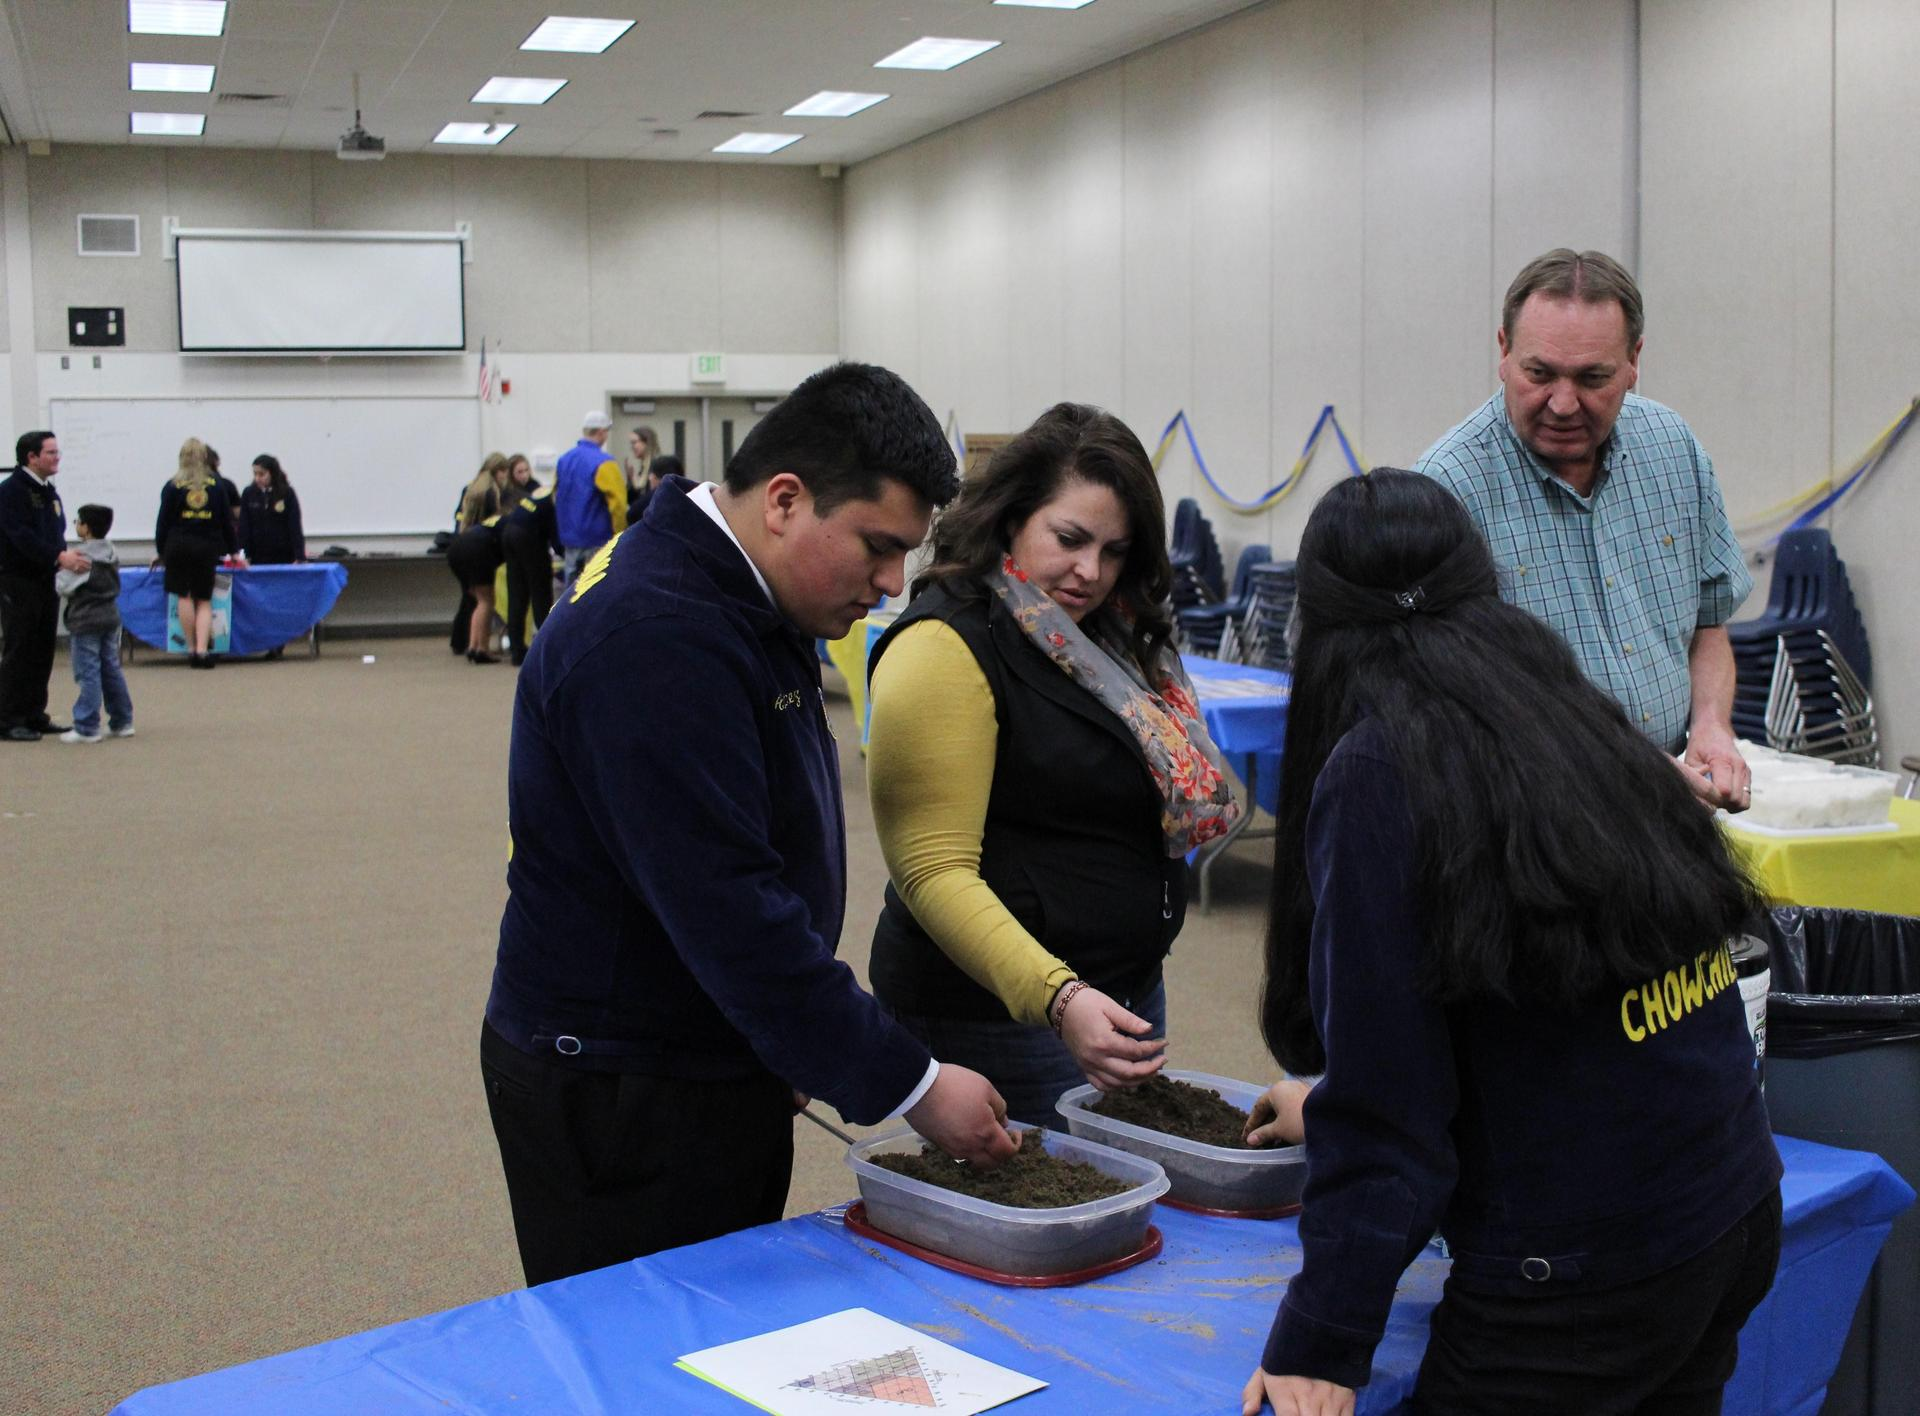 Alan Martinez, Mrs. Alkire, Maria Pichardo, and Mr. Bitter examine soil at the CDE LDE Open House in the Sachem Building